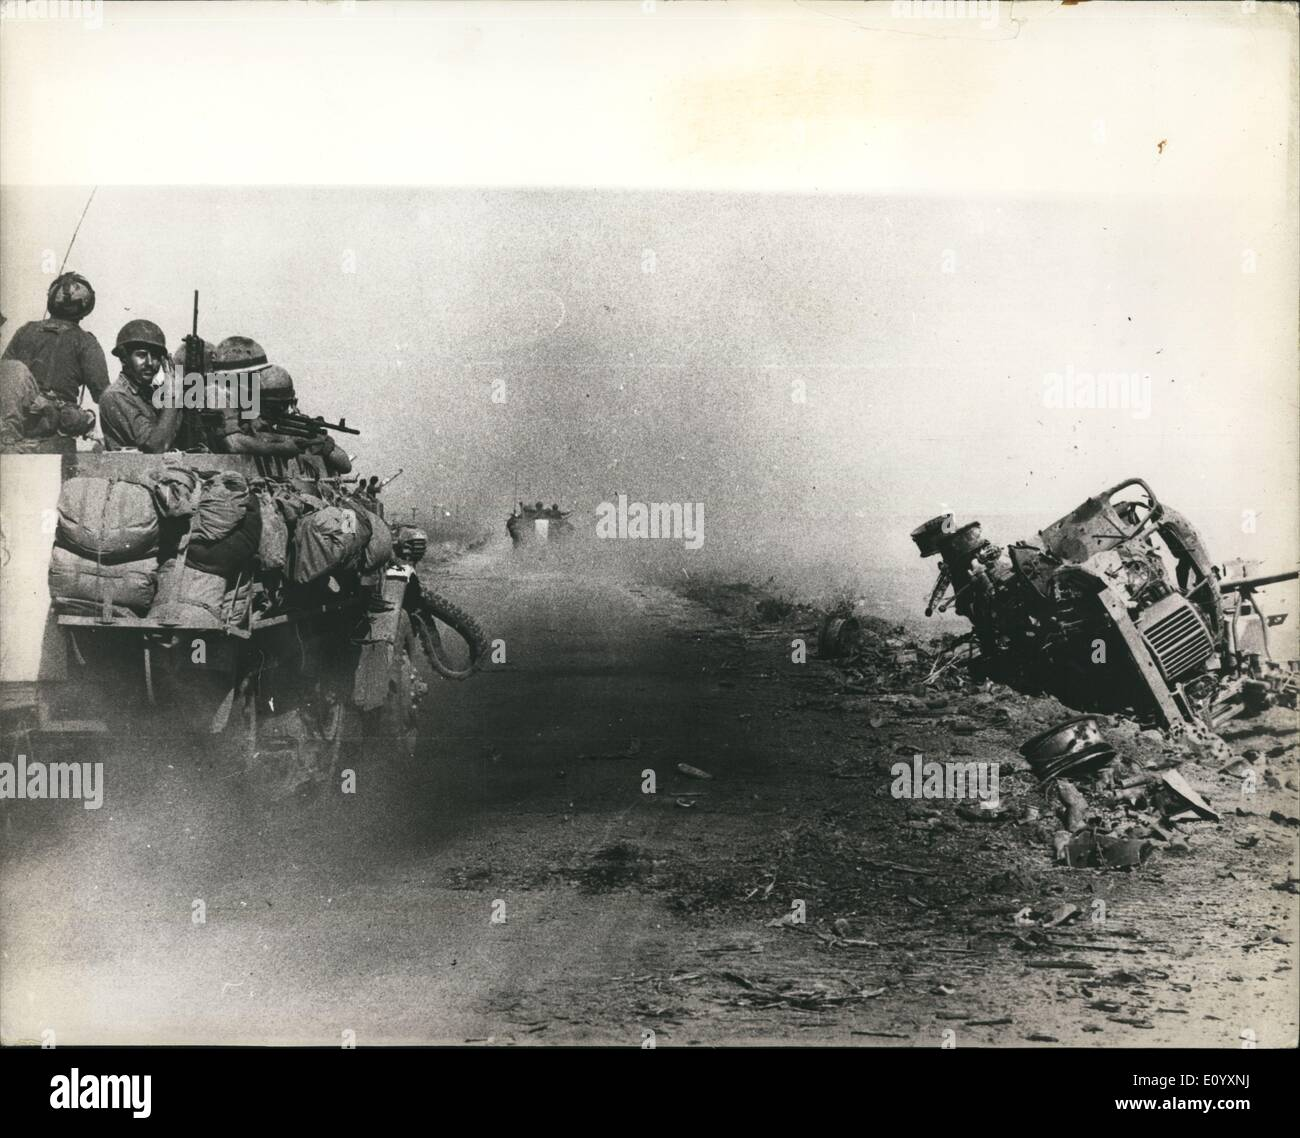 Oct. 10, 1971 - The War in the middle East: Israeli amour pictured on the road to Damascus, Syria, during the Middle East War. ( - Stock Image